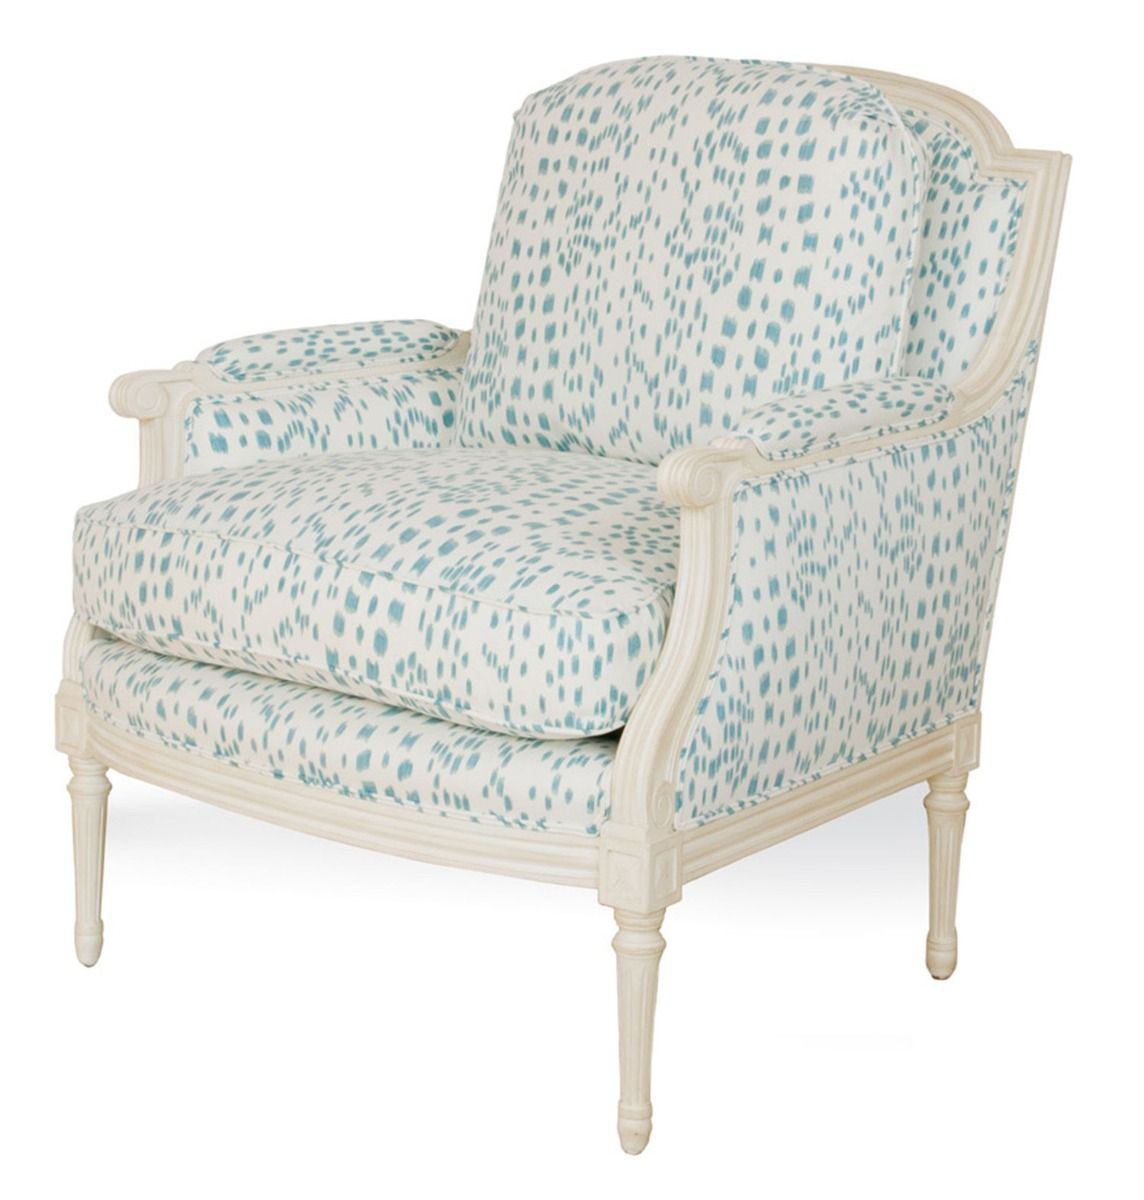 Louis XVI in 2020 | Furniture, Chair, Oversized chair ...